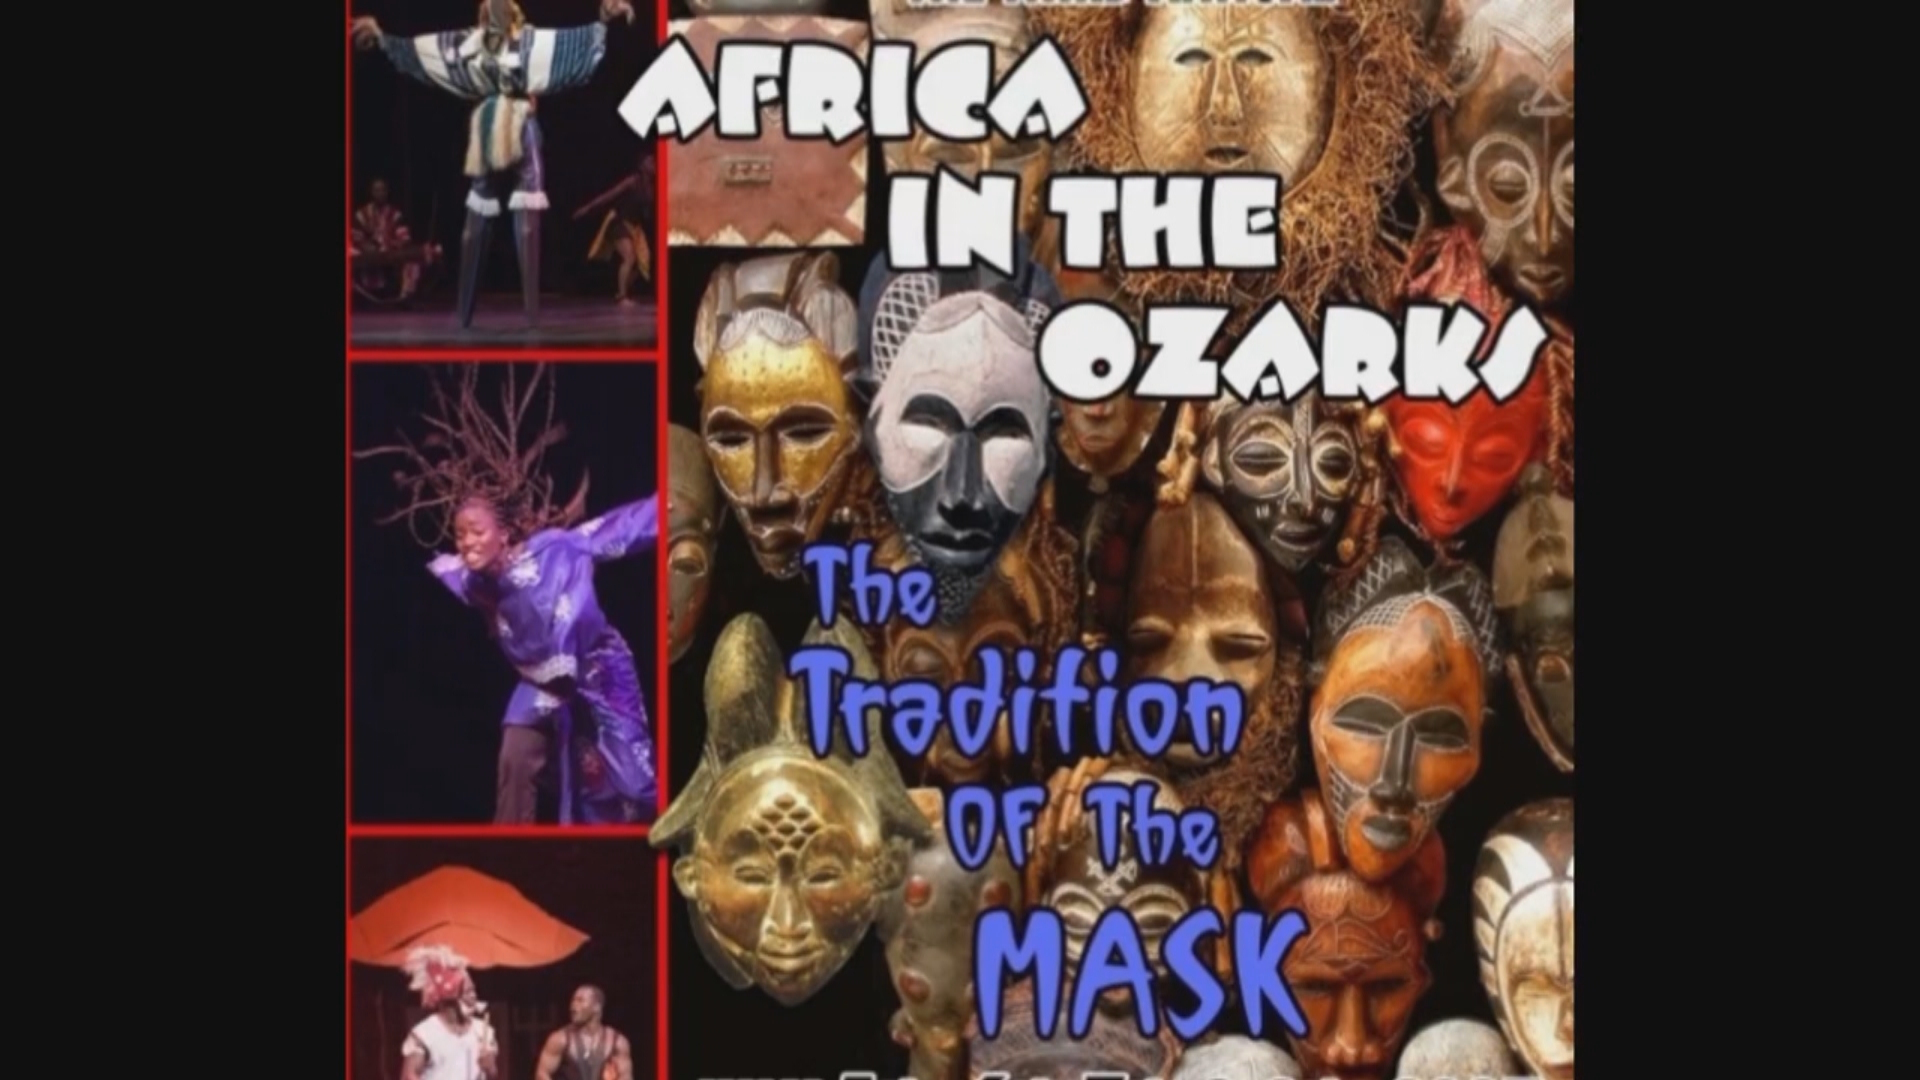 AFRICA IN THE OZARKS VO-GFX AM_frame_977_1537448020405.jpg.jpg